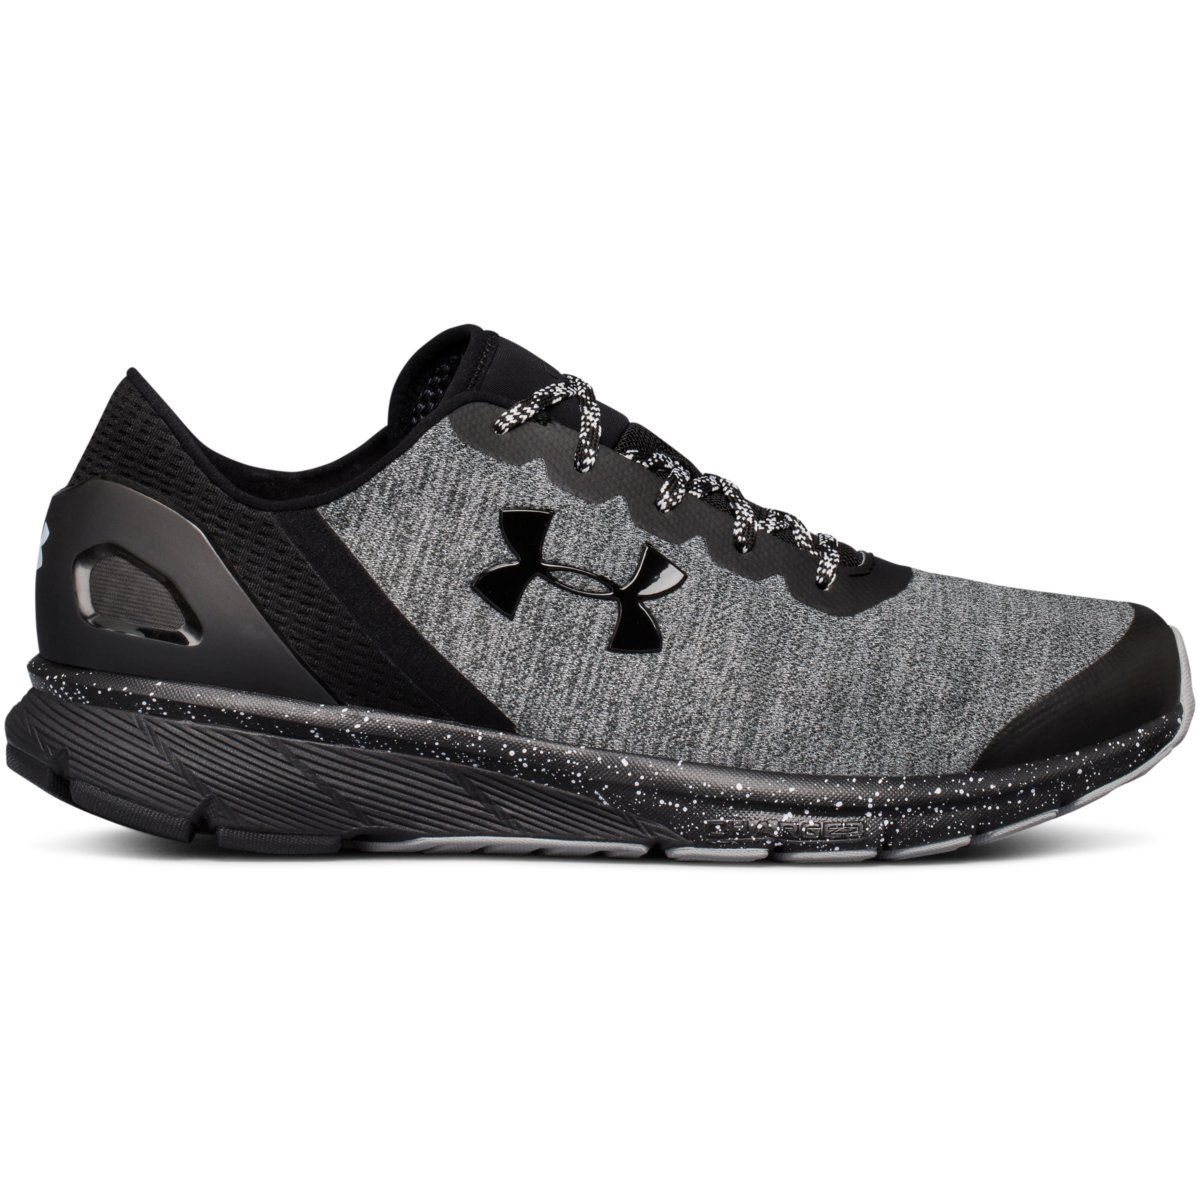 Under Armour Charged Escape Running Shoe Reviews